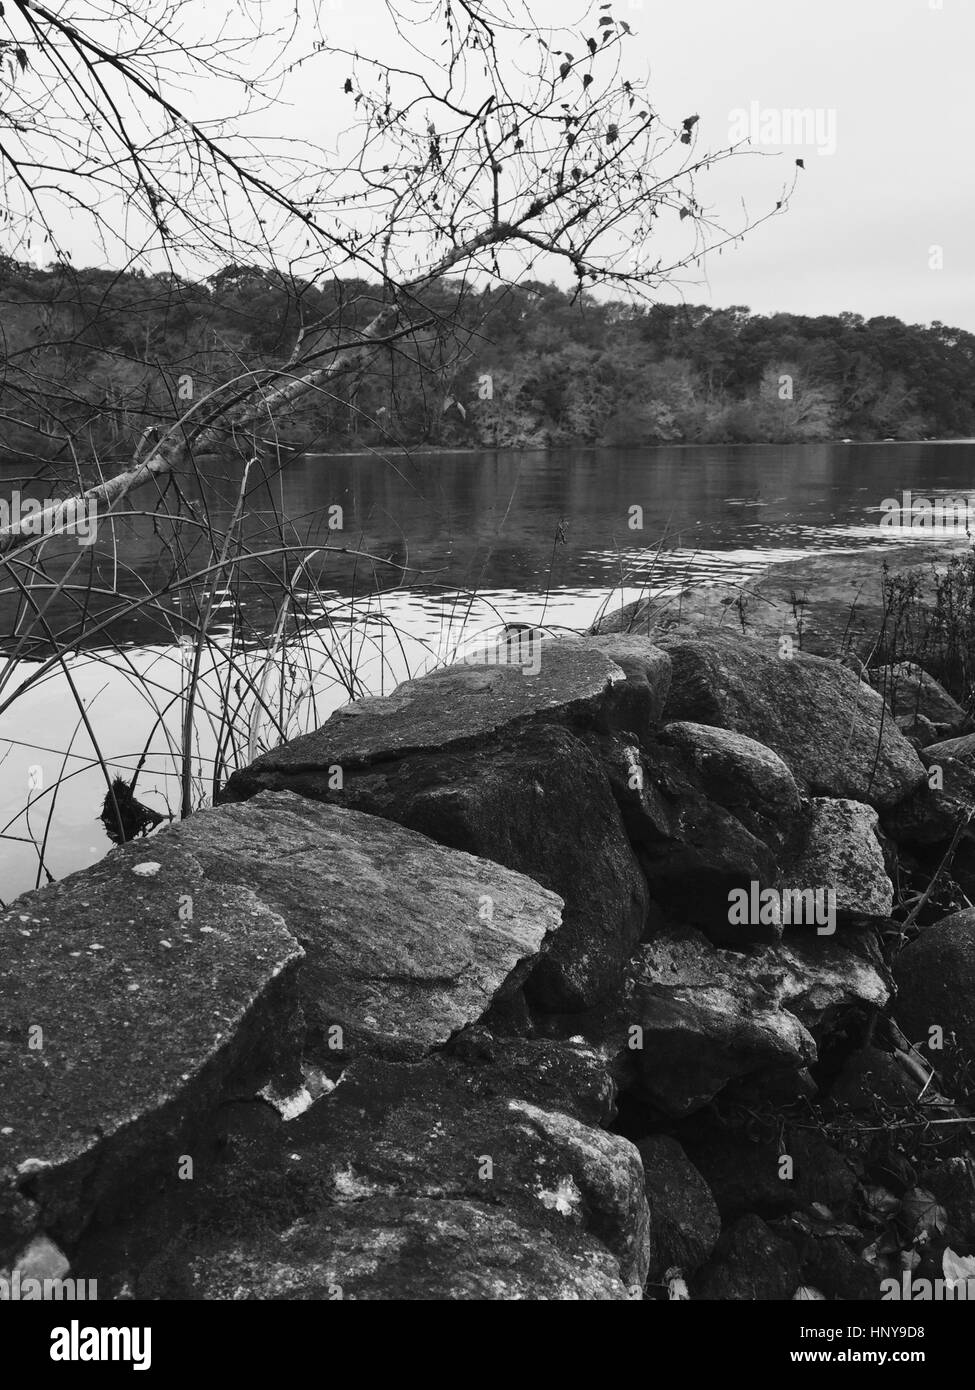 Black and white photo of a rock wall near a pond - Stock Image